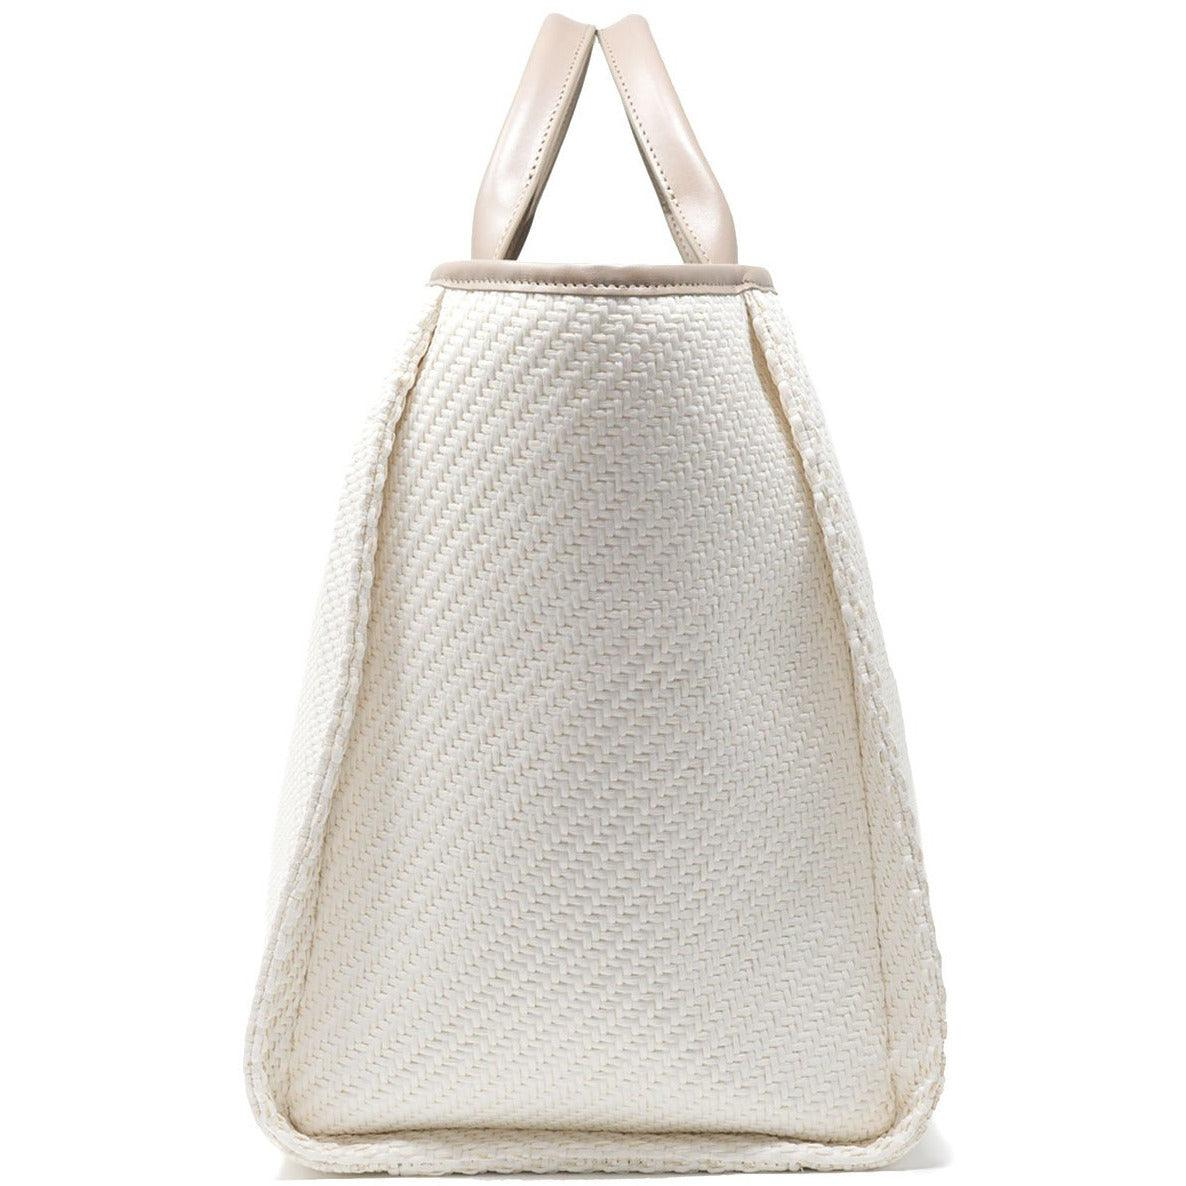 The Hamptons Large Shopping Bag in Taupe